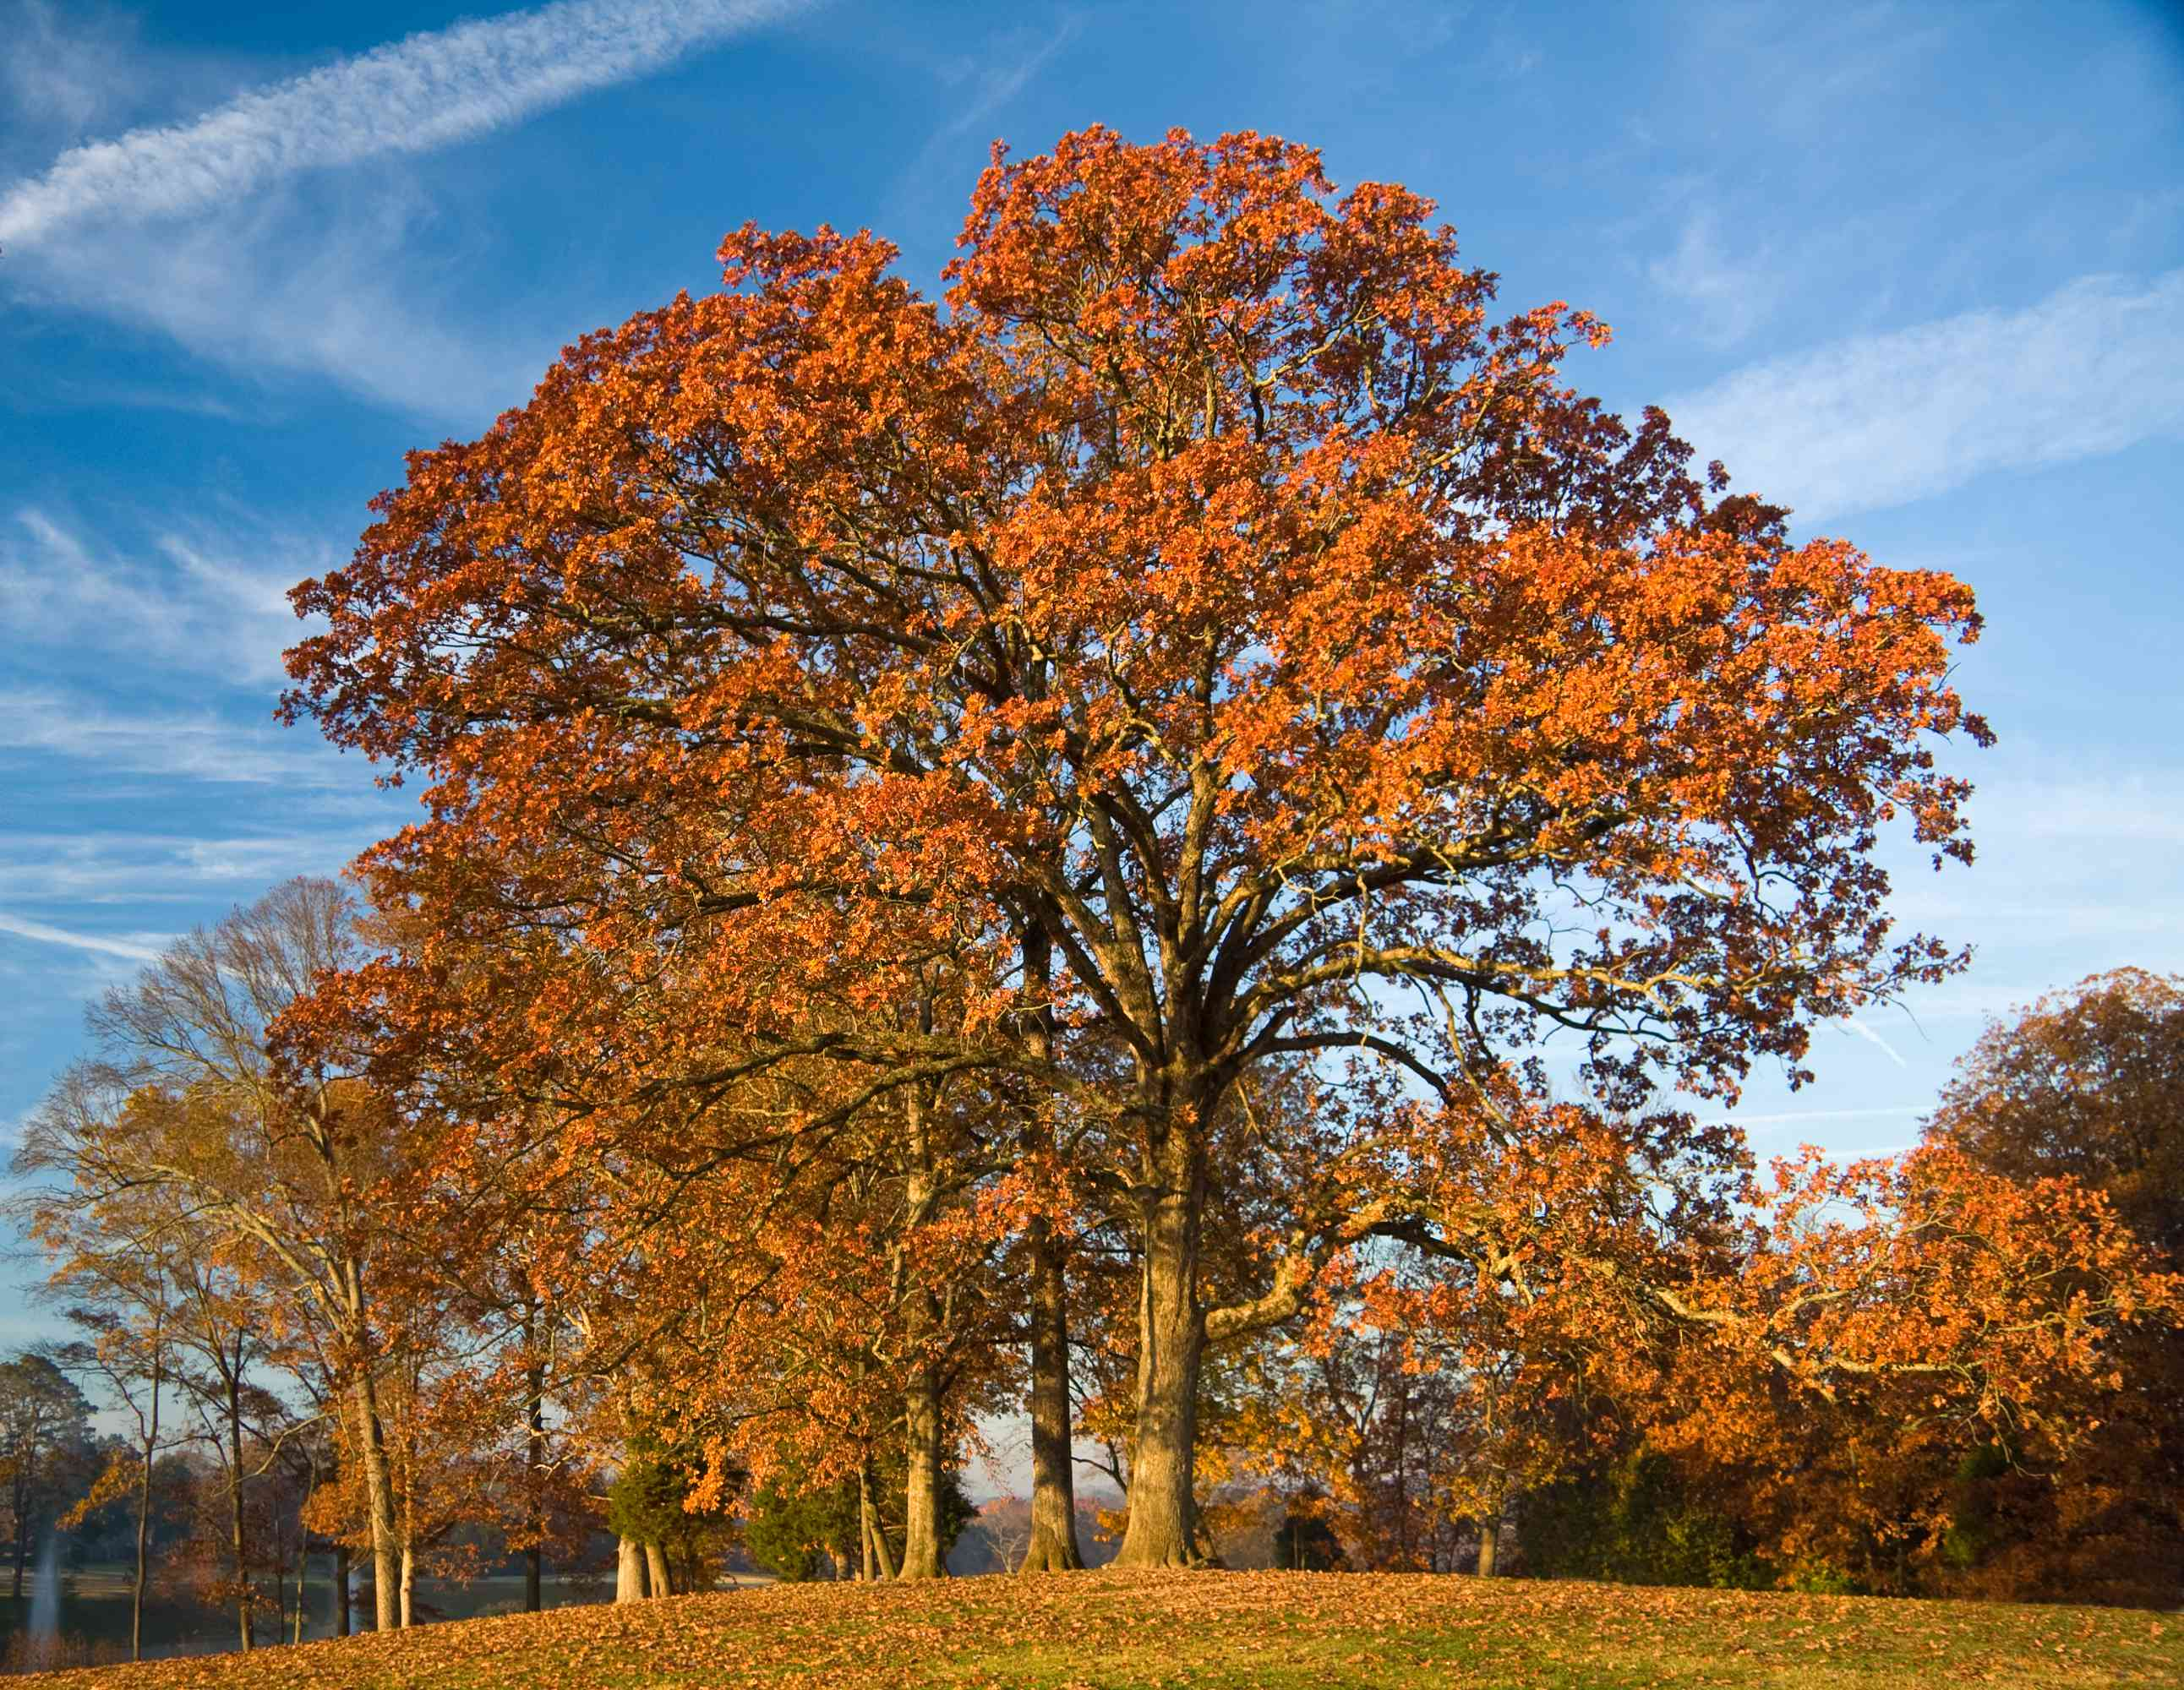 A Post Oak tree with red leaves in the fall.